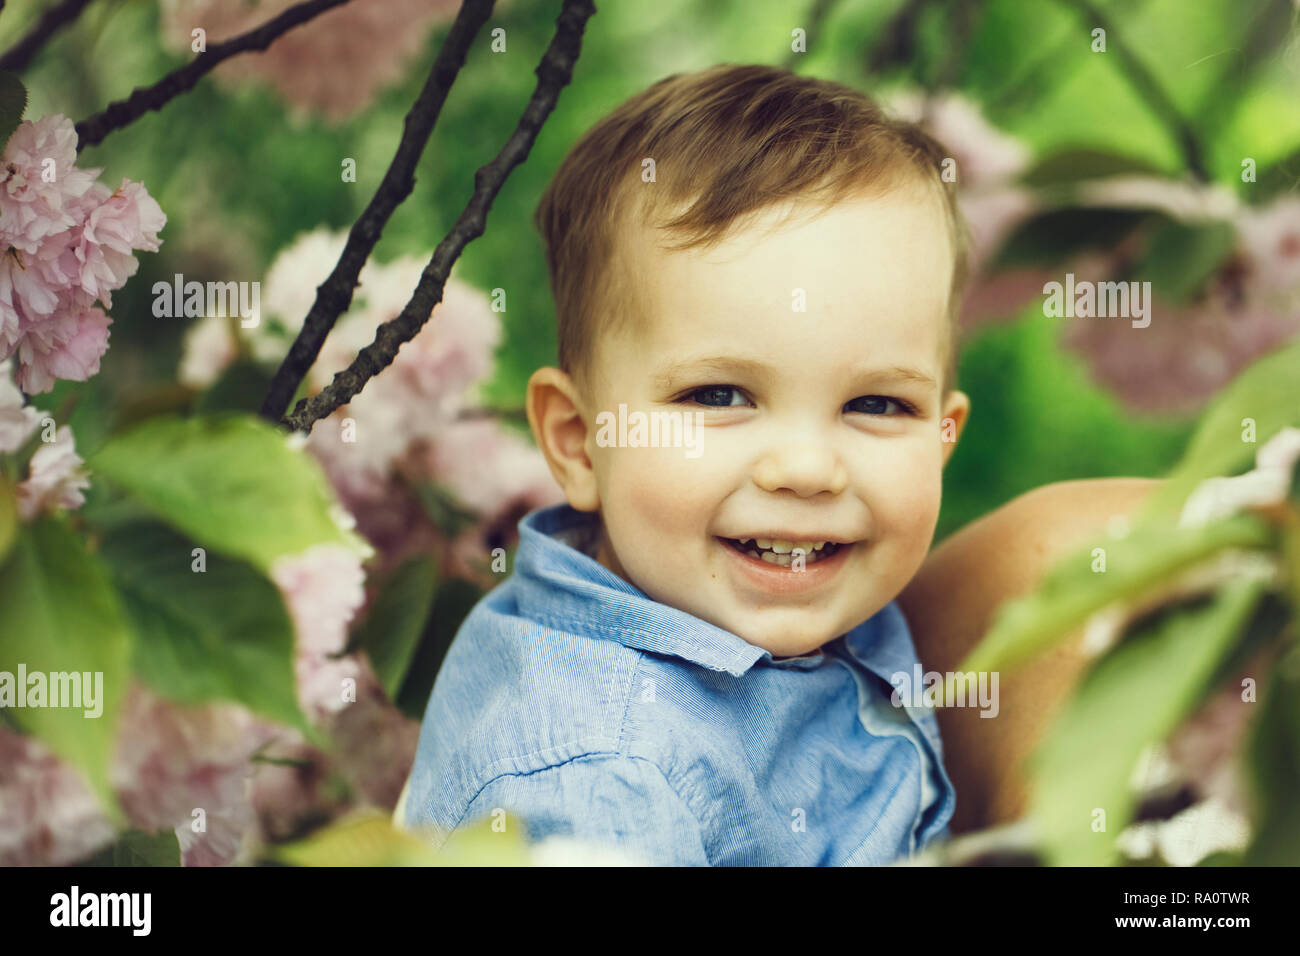 a739bbb10647 Cute happy baby boy, little child, with blond hair in blue shirt smiling in  mother arms among pink blossoming flowers and green leaves on sunny spring